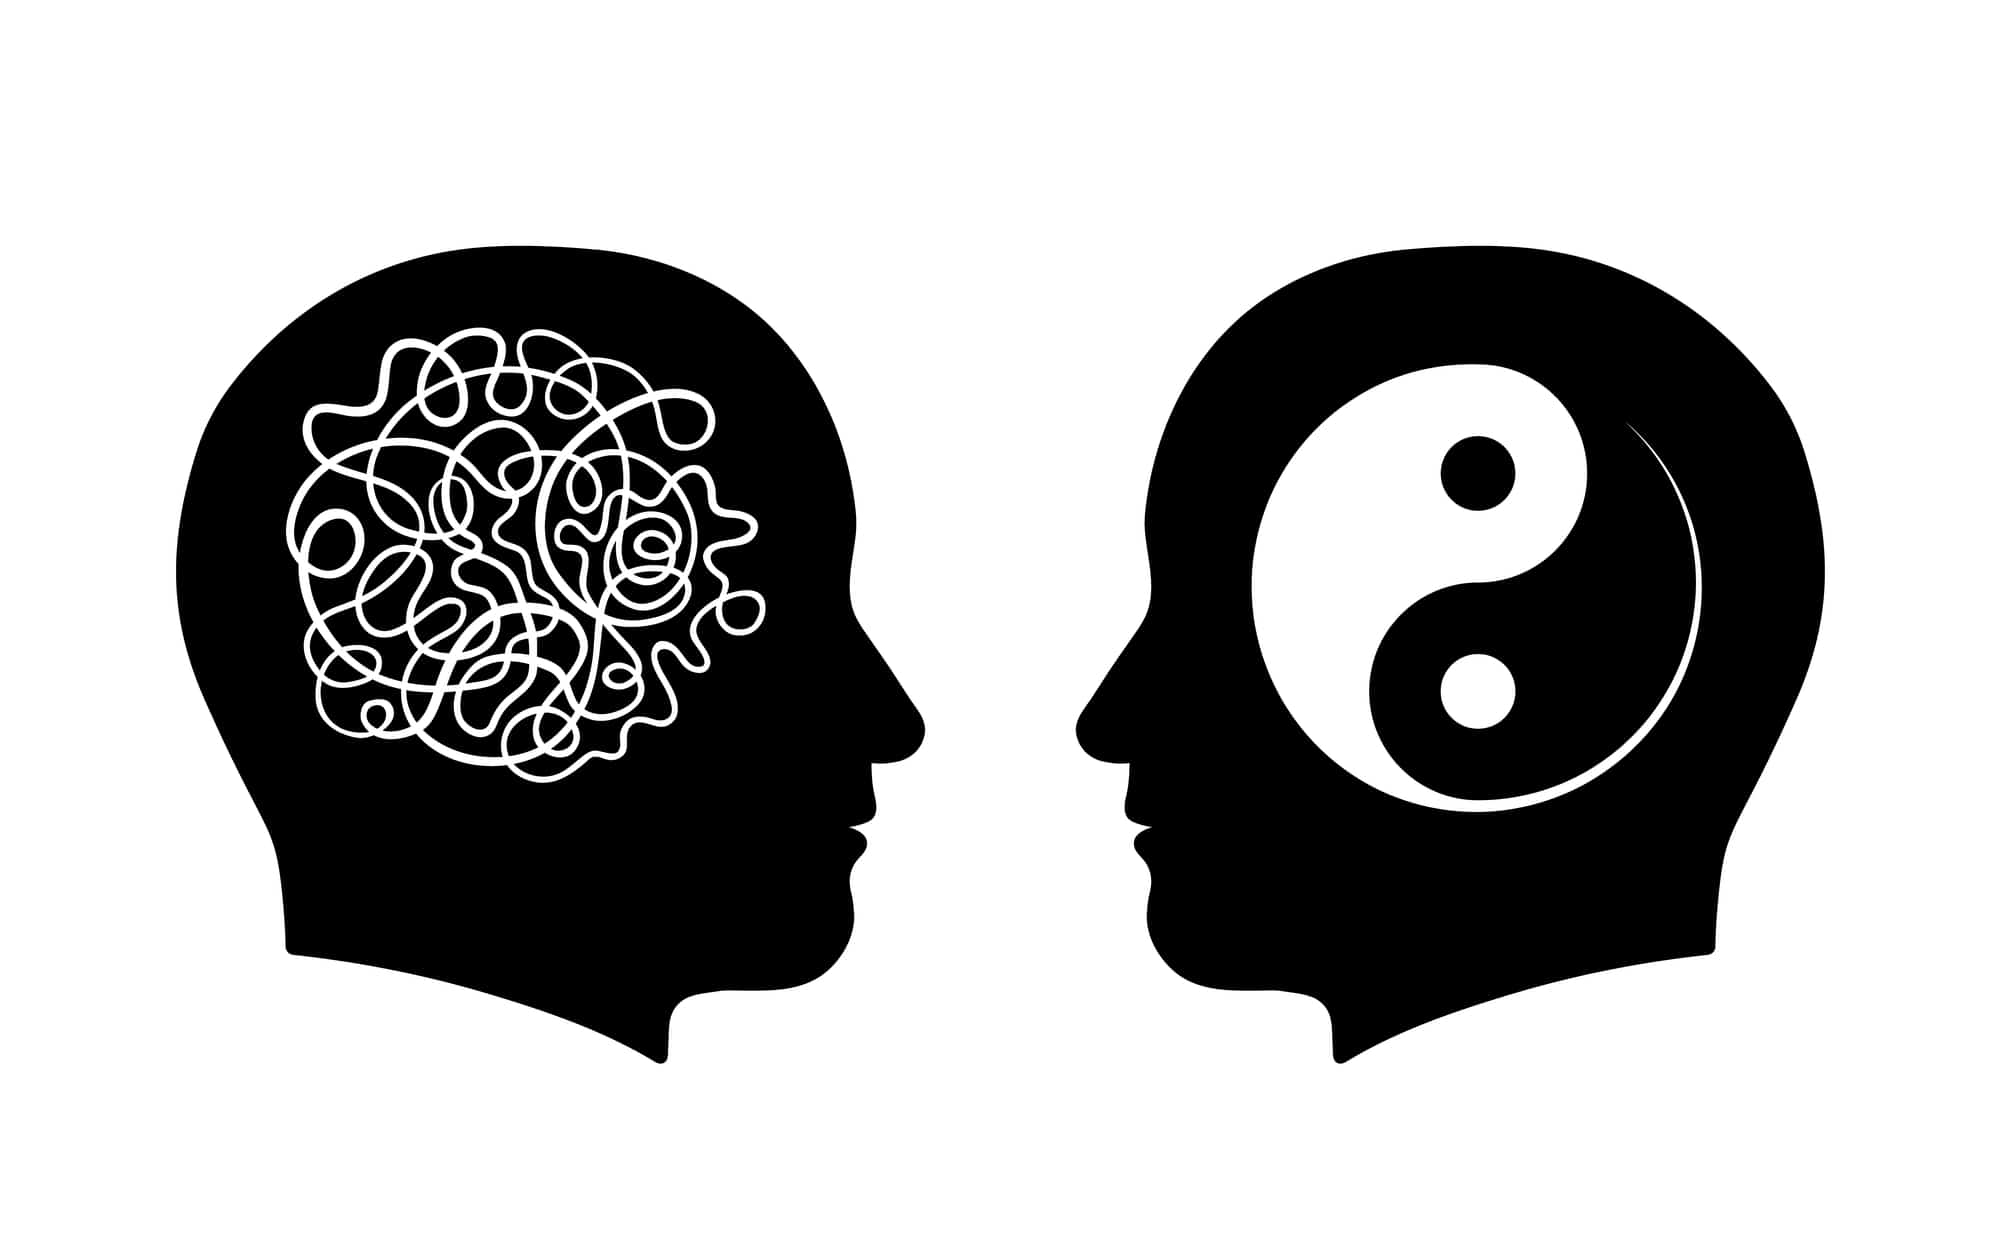 Figures of man head silhouettes with symbol of messy maze and yin and yang inside, vector illustration